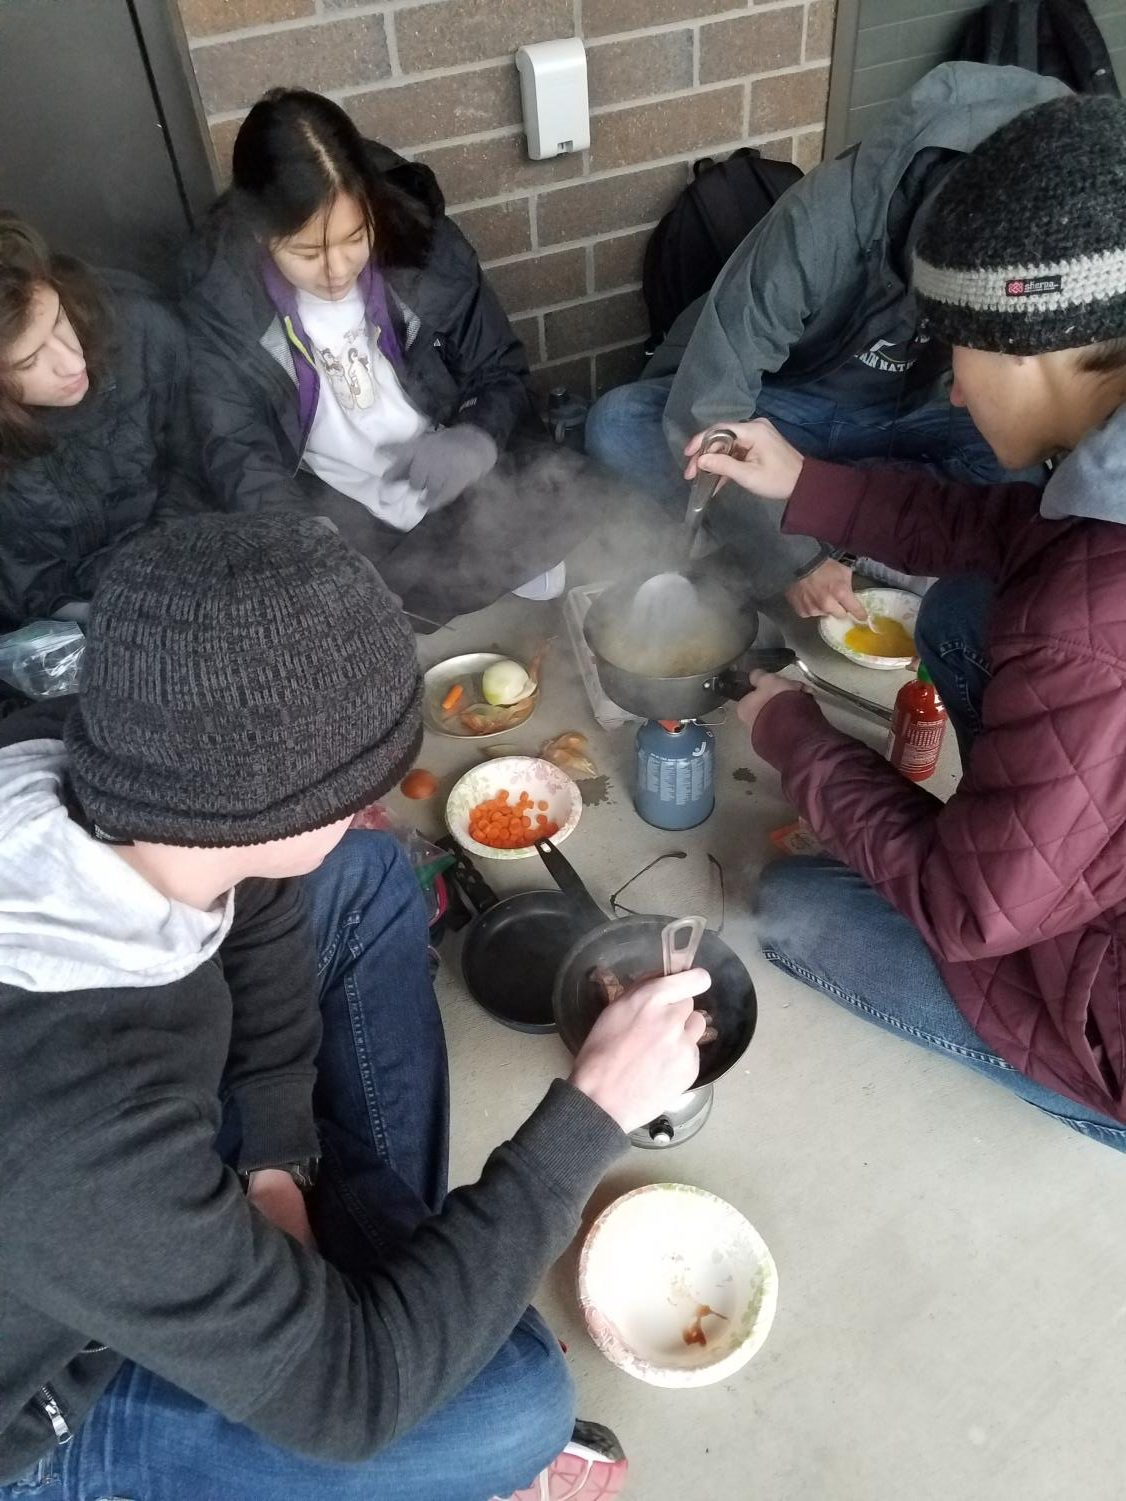 Track six students cook pasta with different supplies they brought.